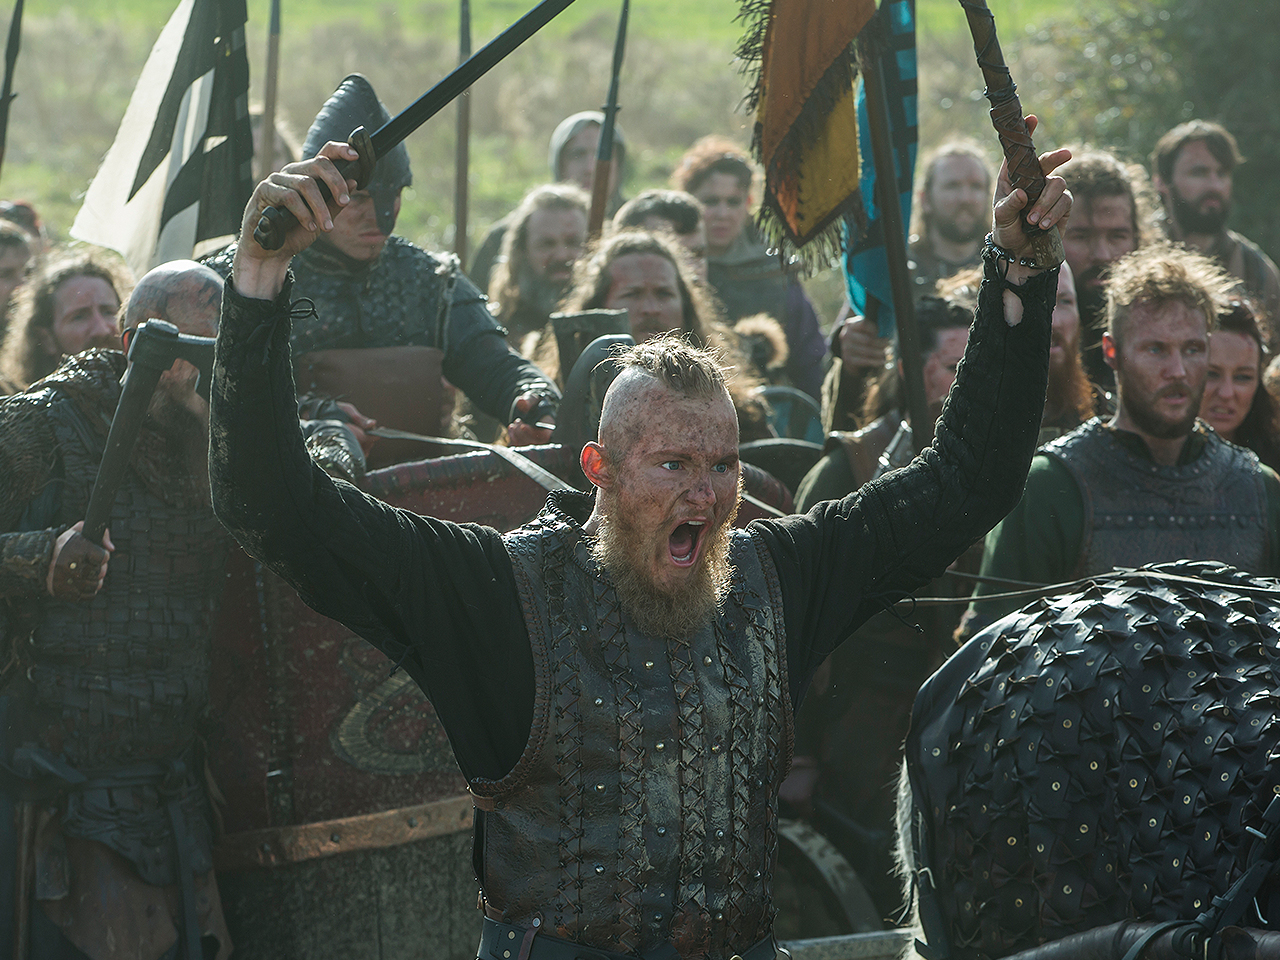 How the 'Vikings' Actors Get Battle-Ready, According to the Show Stunt Coordinator